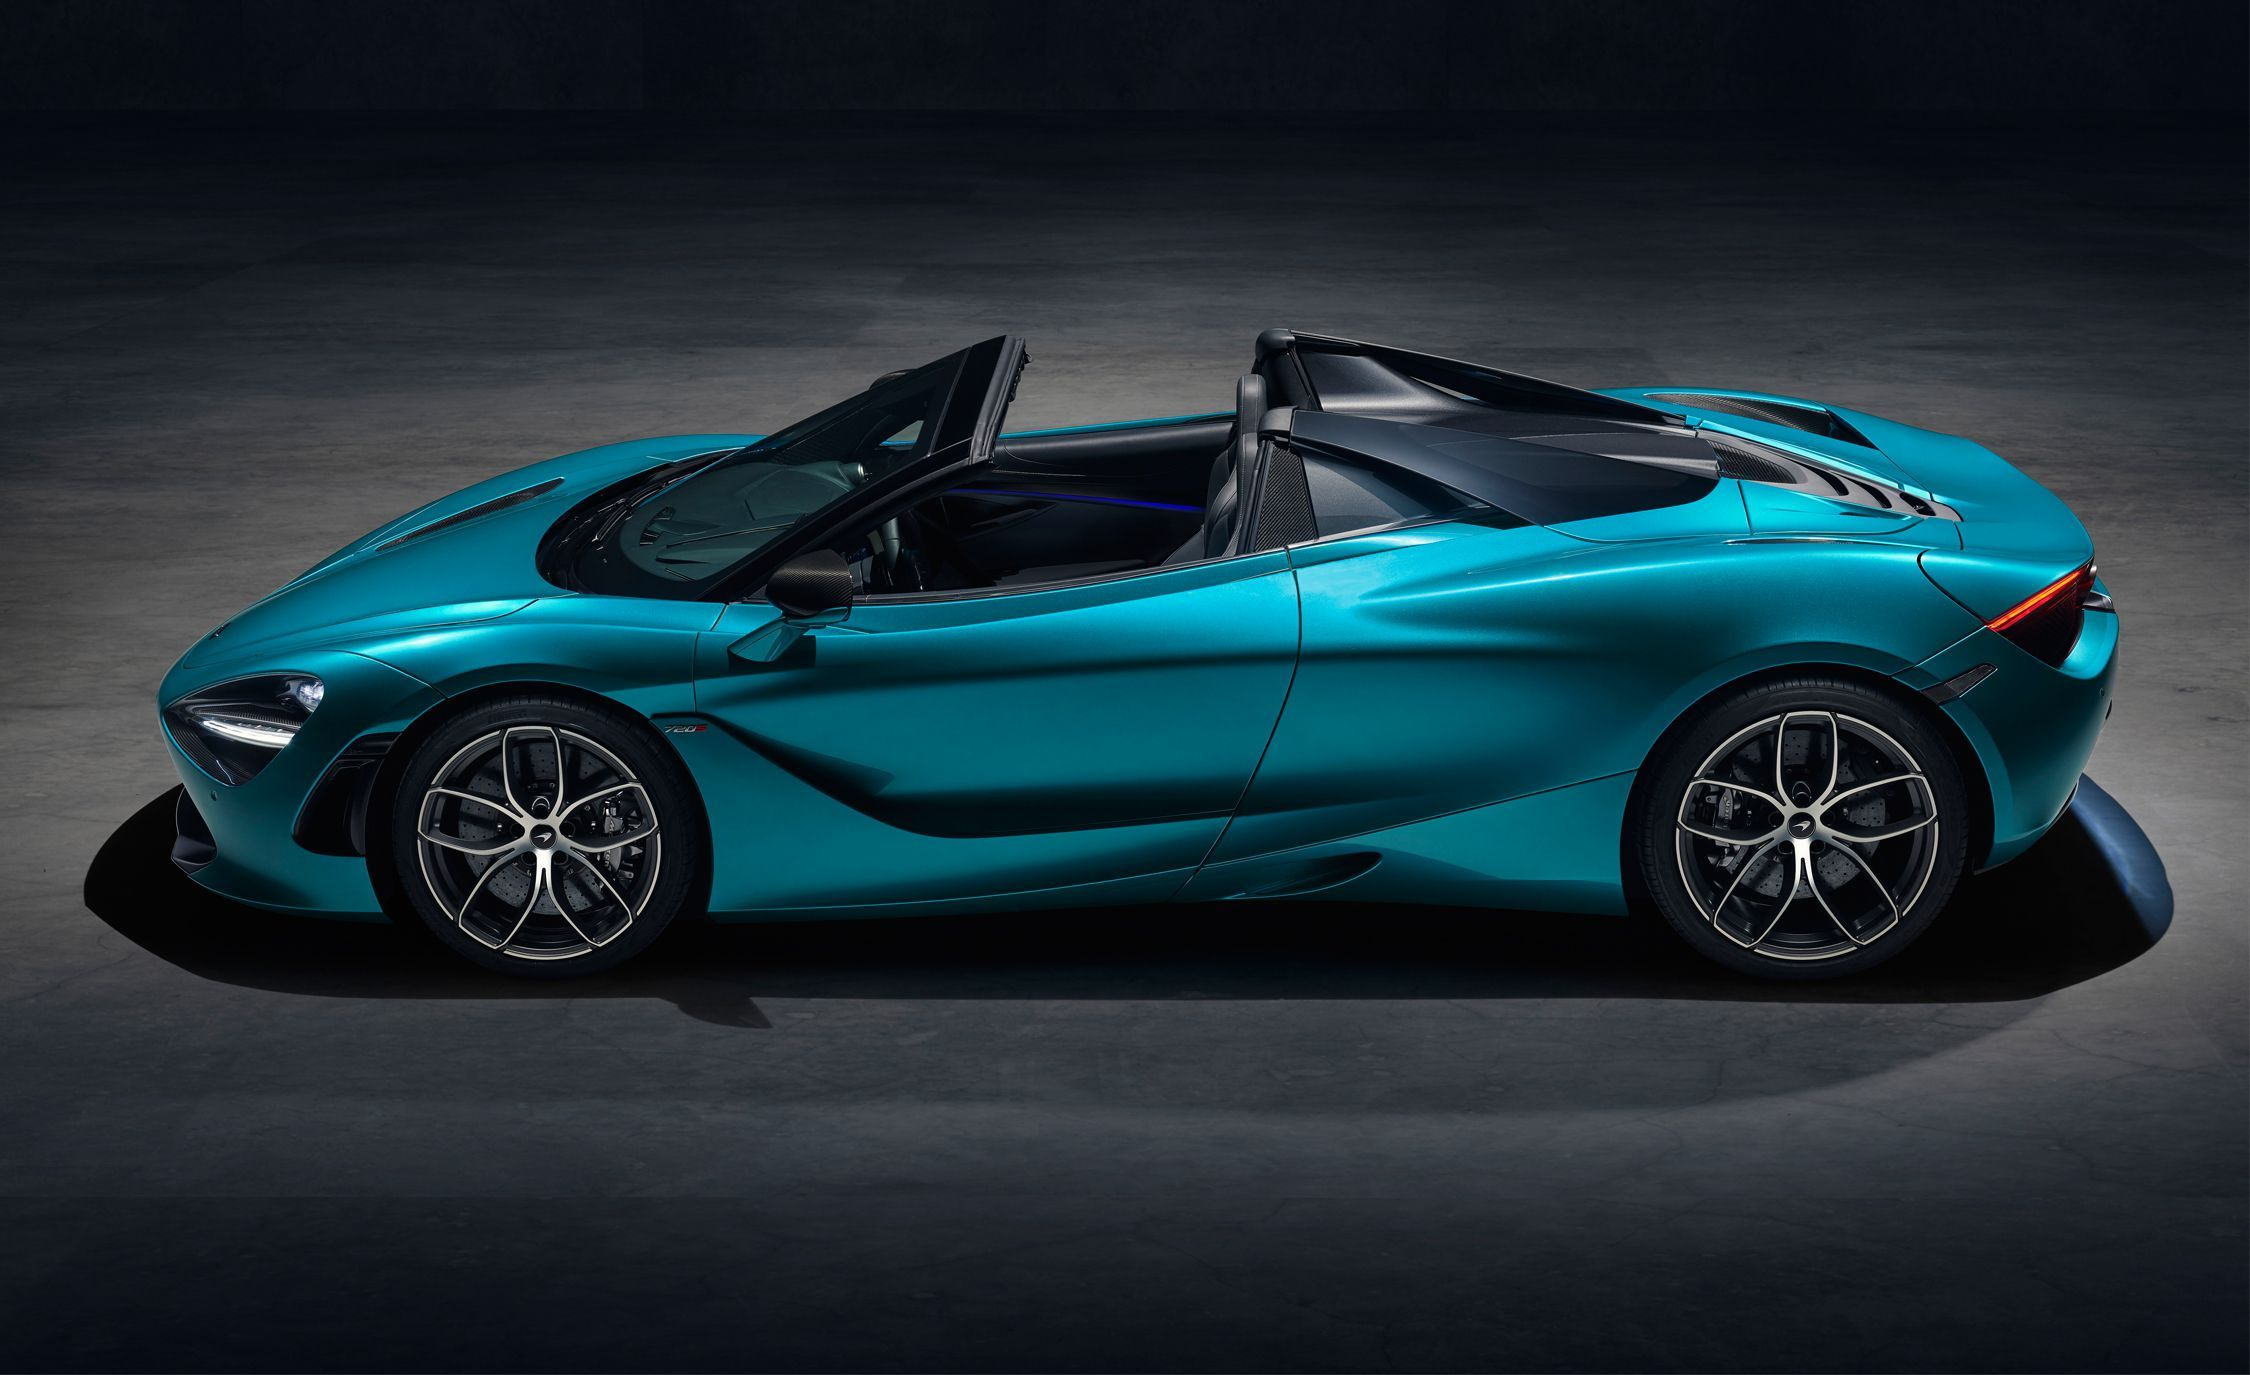 Mclaren 720s Spider Revealed With Specs Pricing And U S On Sale Date New Mclaren Sports Car Super Cars